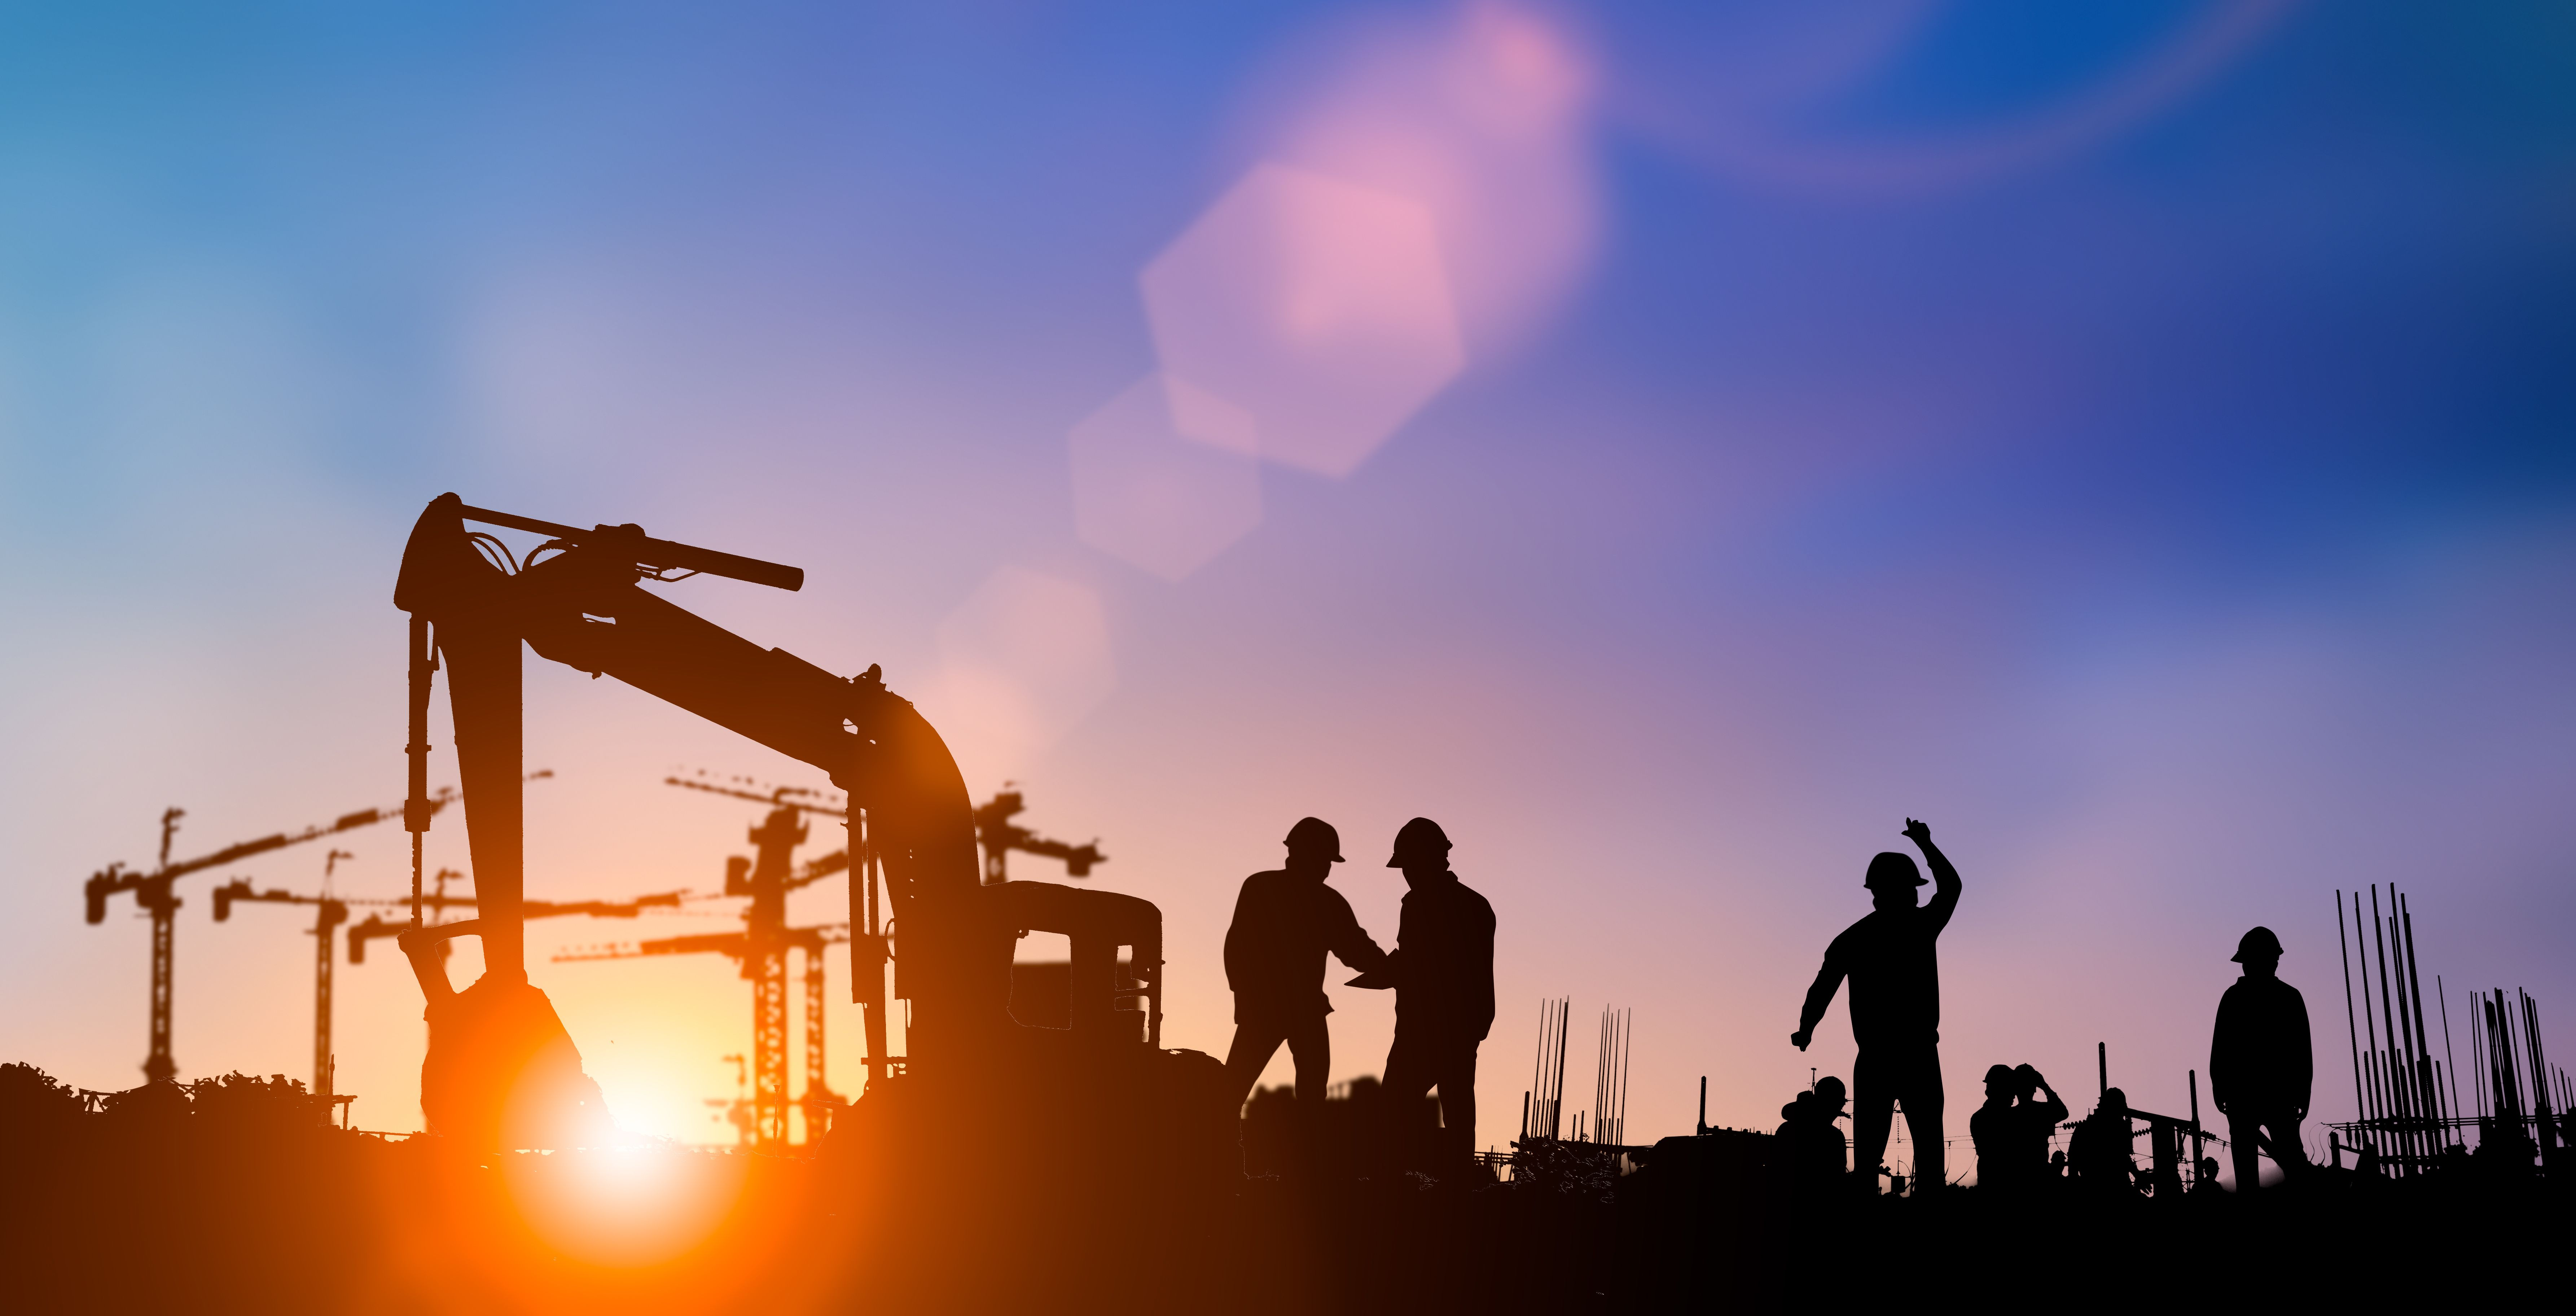 Silhouette of construction workers on site at sunrise